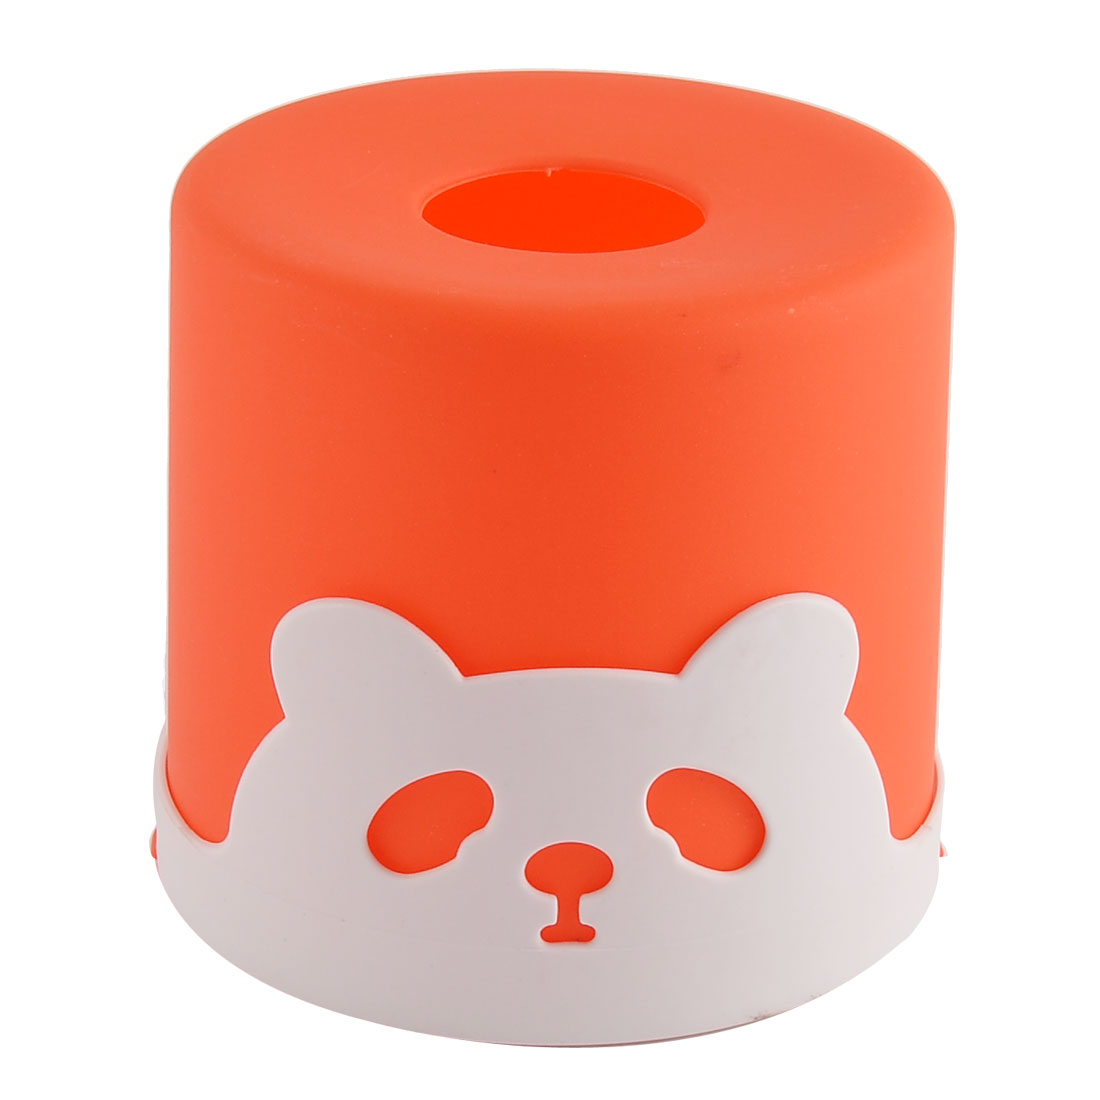 Household Car Plastic Round Panda Pattern Napkin Roll Tissue Paper Box Case Holder Cover Orange